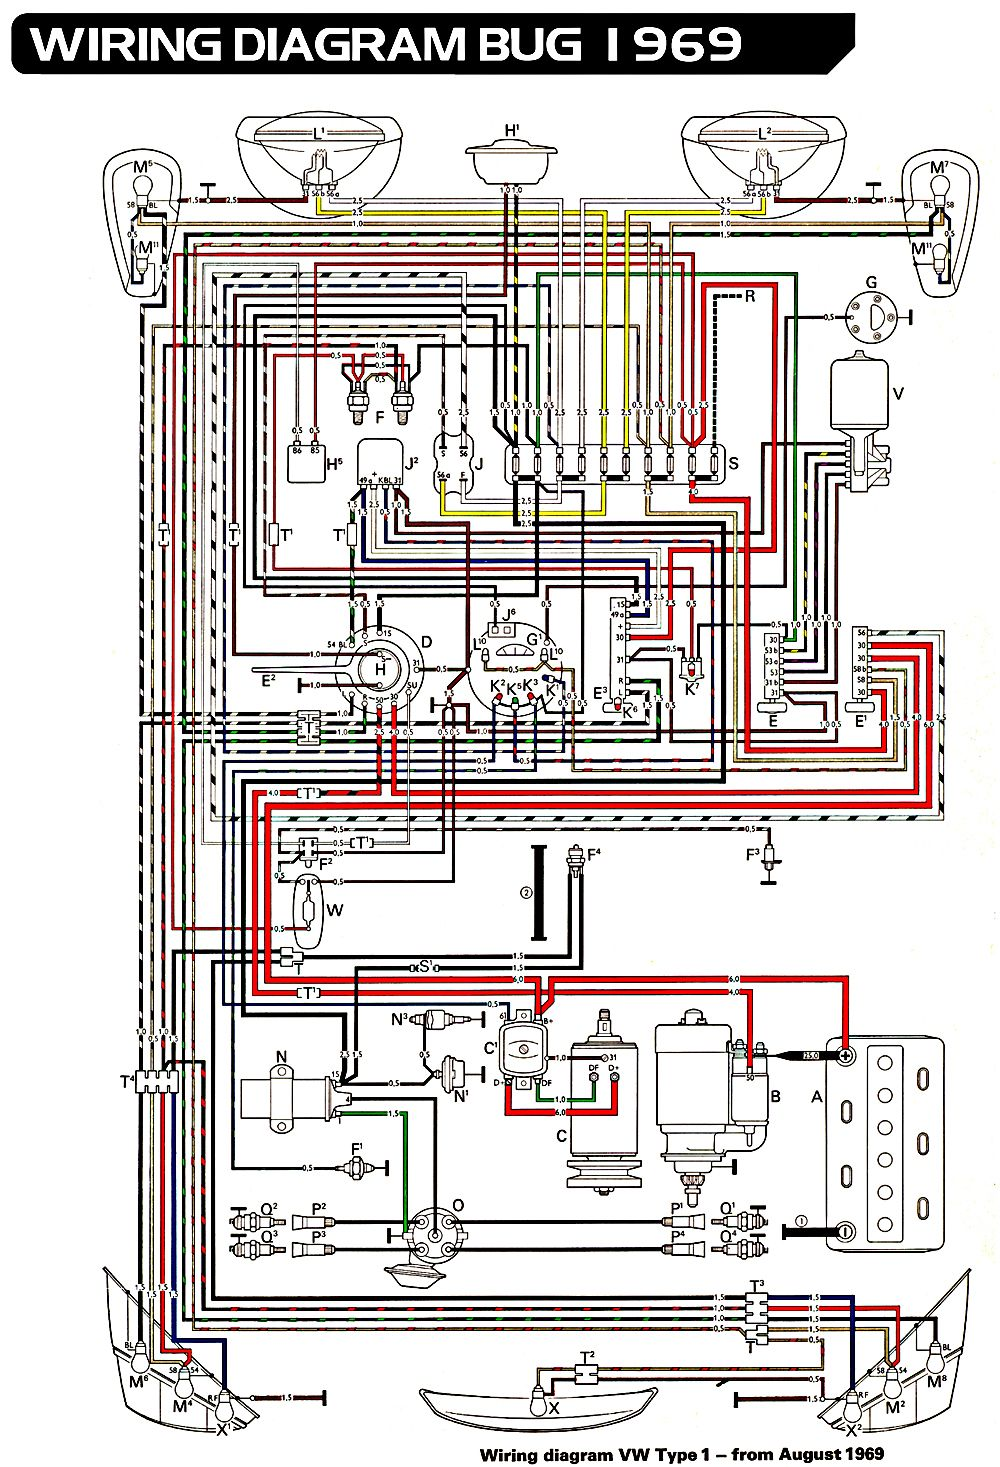 Beetle Wiring Diagram For 69 Wiring Diagram Schematics VW Beetle Fuse Block  69 Vw Beetle Fuse Box